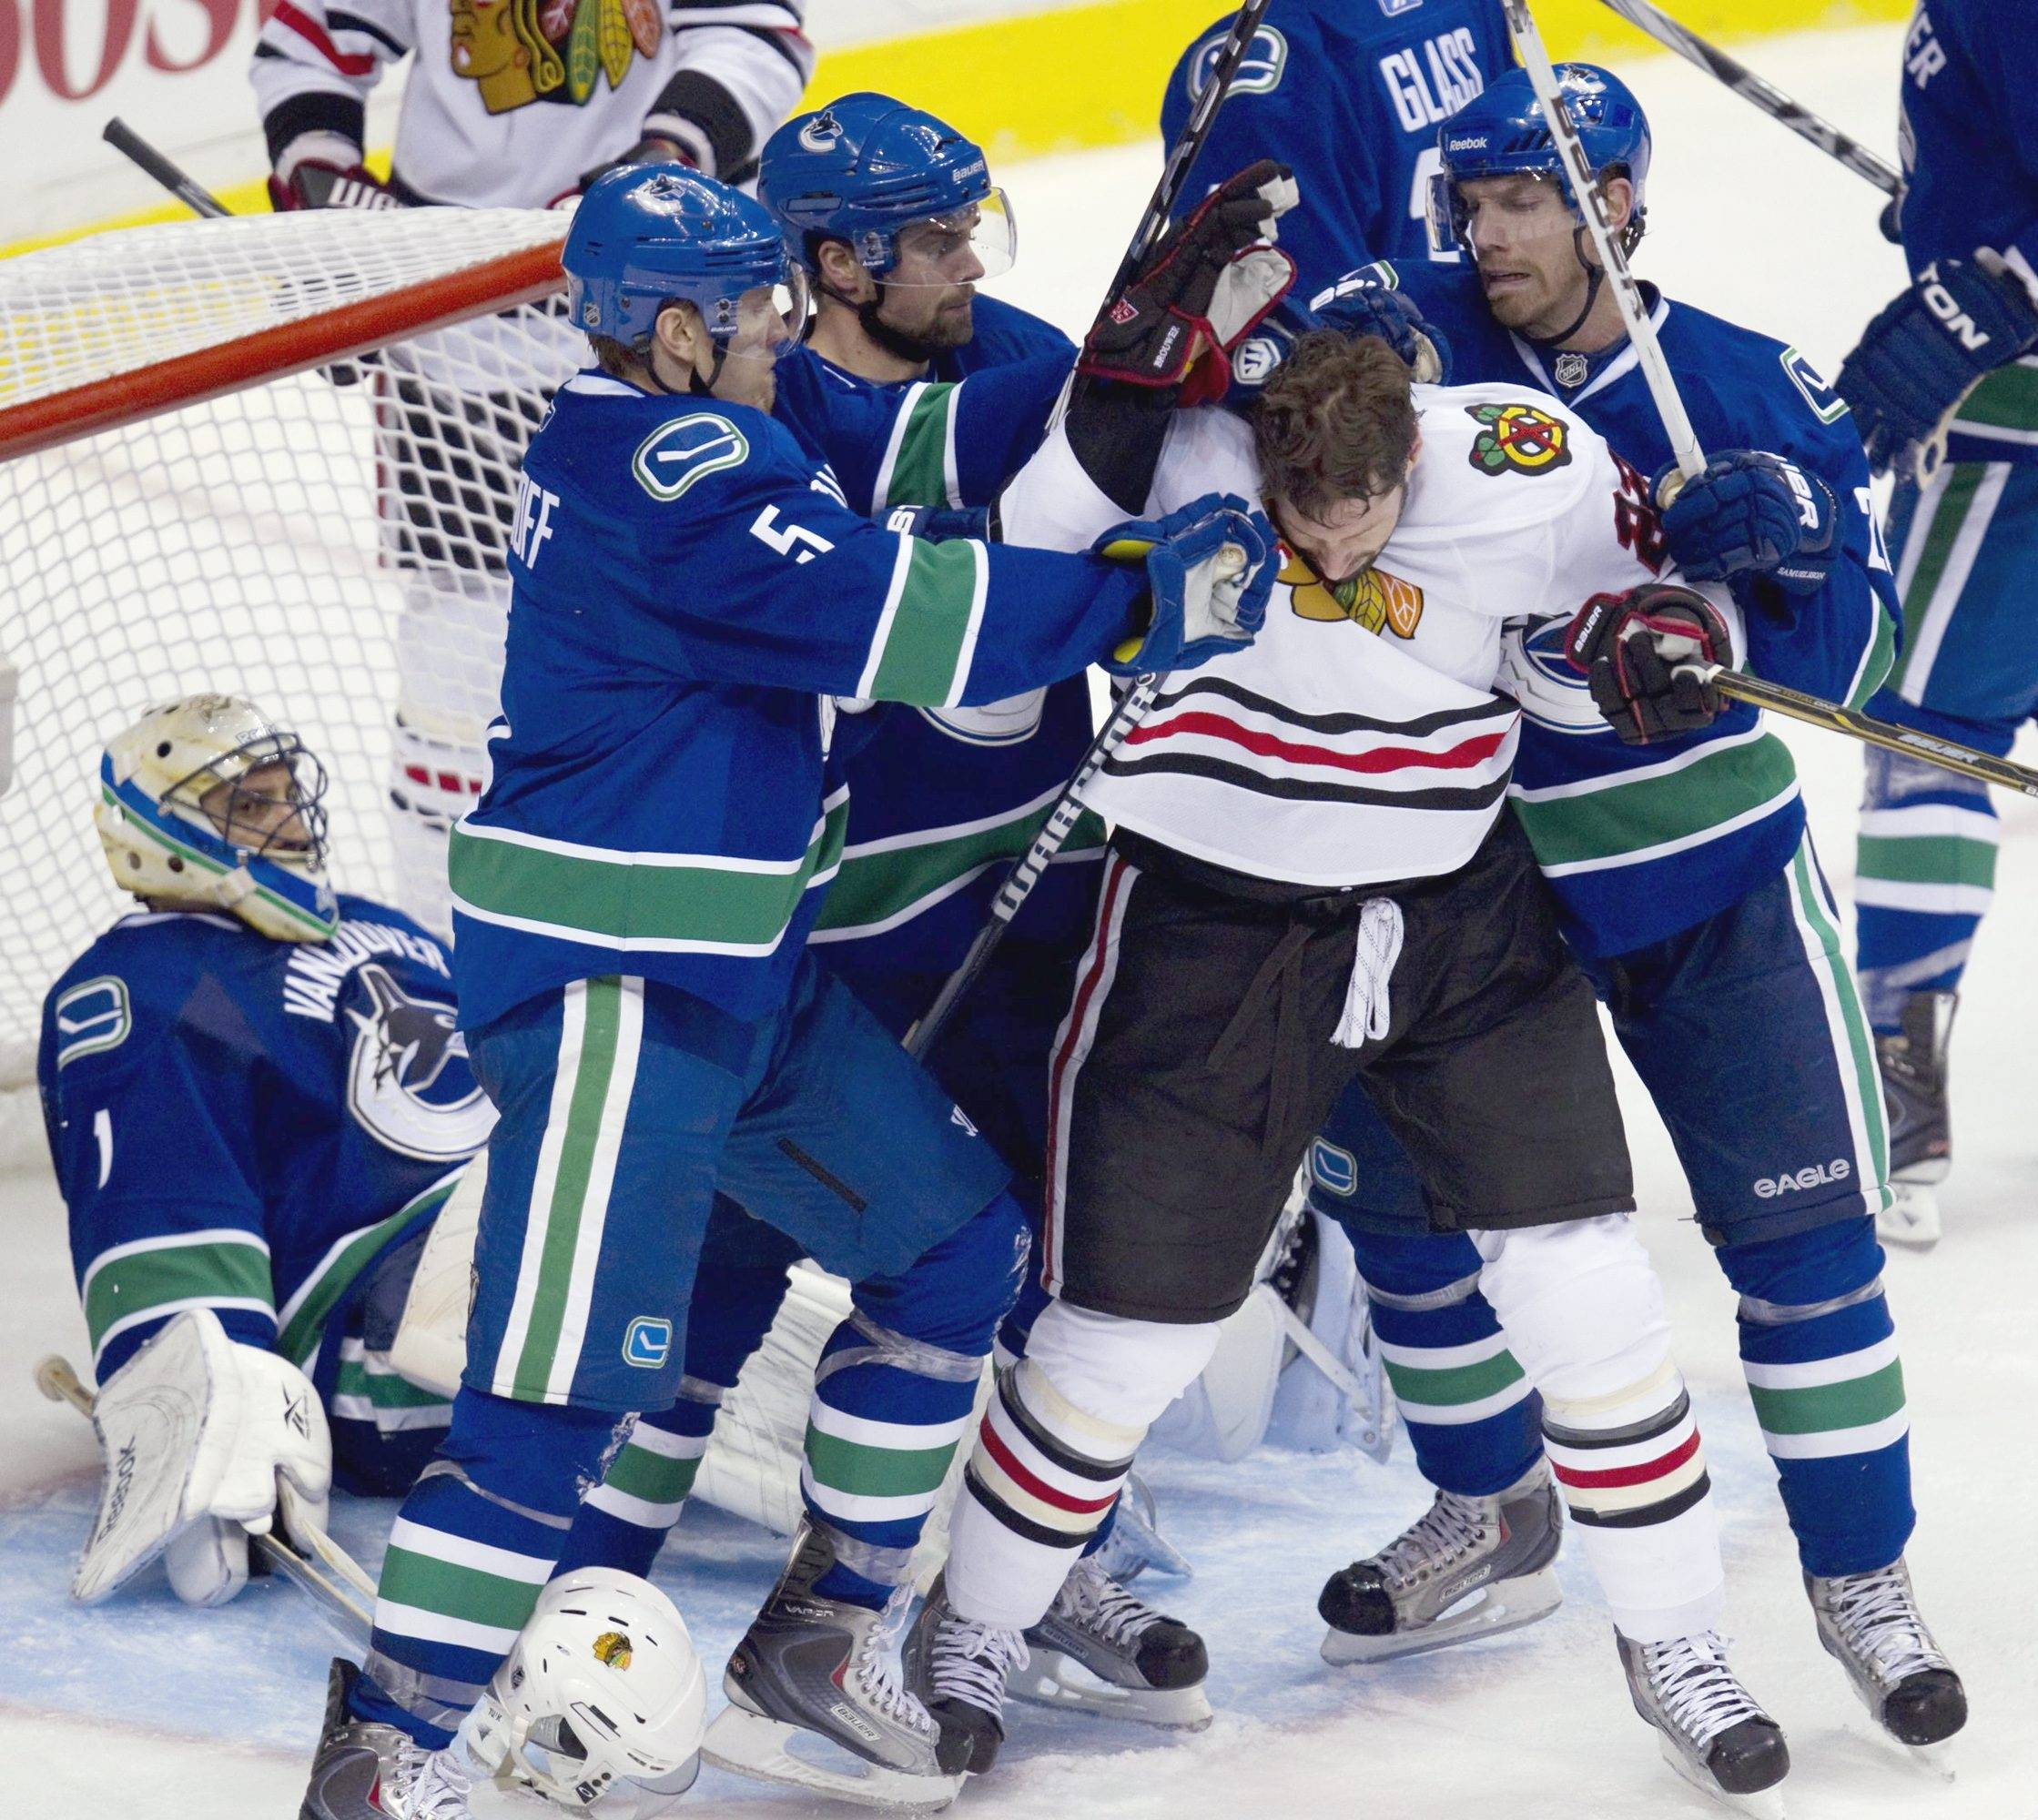 Canucks goaltender Roberto Luongo, left, looks on as teammates Christian Ehrhoff, of Germany; Dan Hamhuis; and Mikael Samuelsson, of Sweden, from second from left, try to clear Chicago Blackhawks' Troy Brouwer, center, from in front of their net during the second period of Game 7 of an NHL hockey Stanley Cup first-round playoff series in Vancouver, British Columbia, on Tuesday.